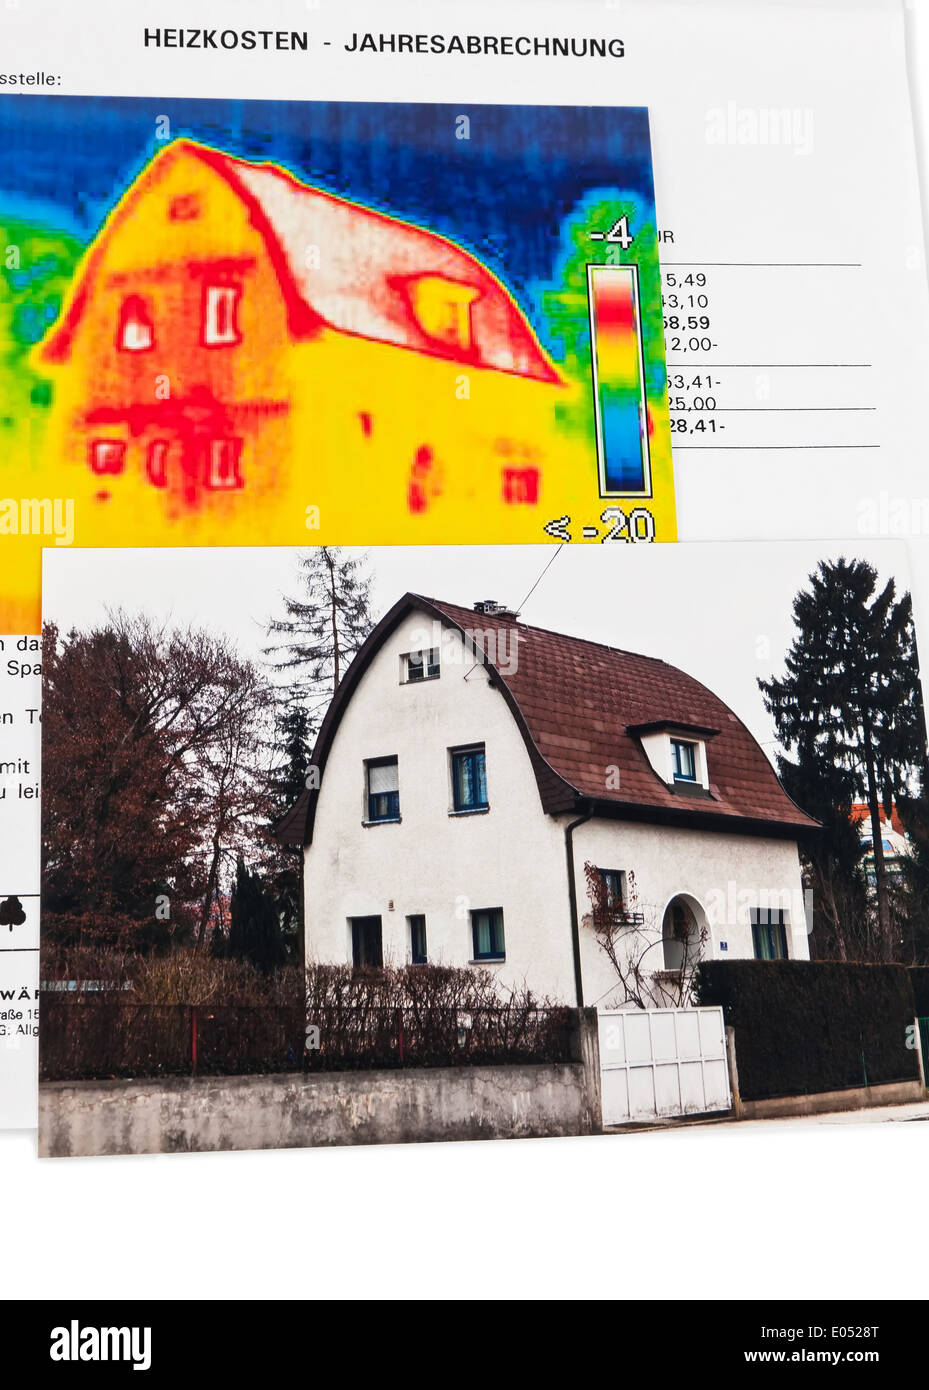 Energy Save By Heat Insulation. House With Warm Picture Of Camera Takes A  Photo., Energie Sparen Durch Waermedaemmung. Haus Mit